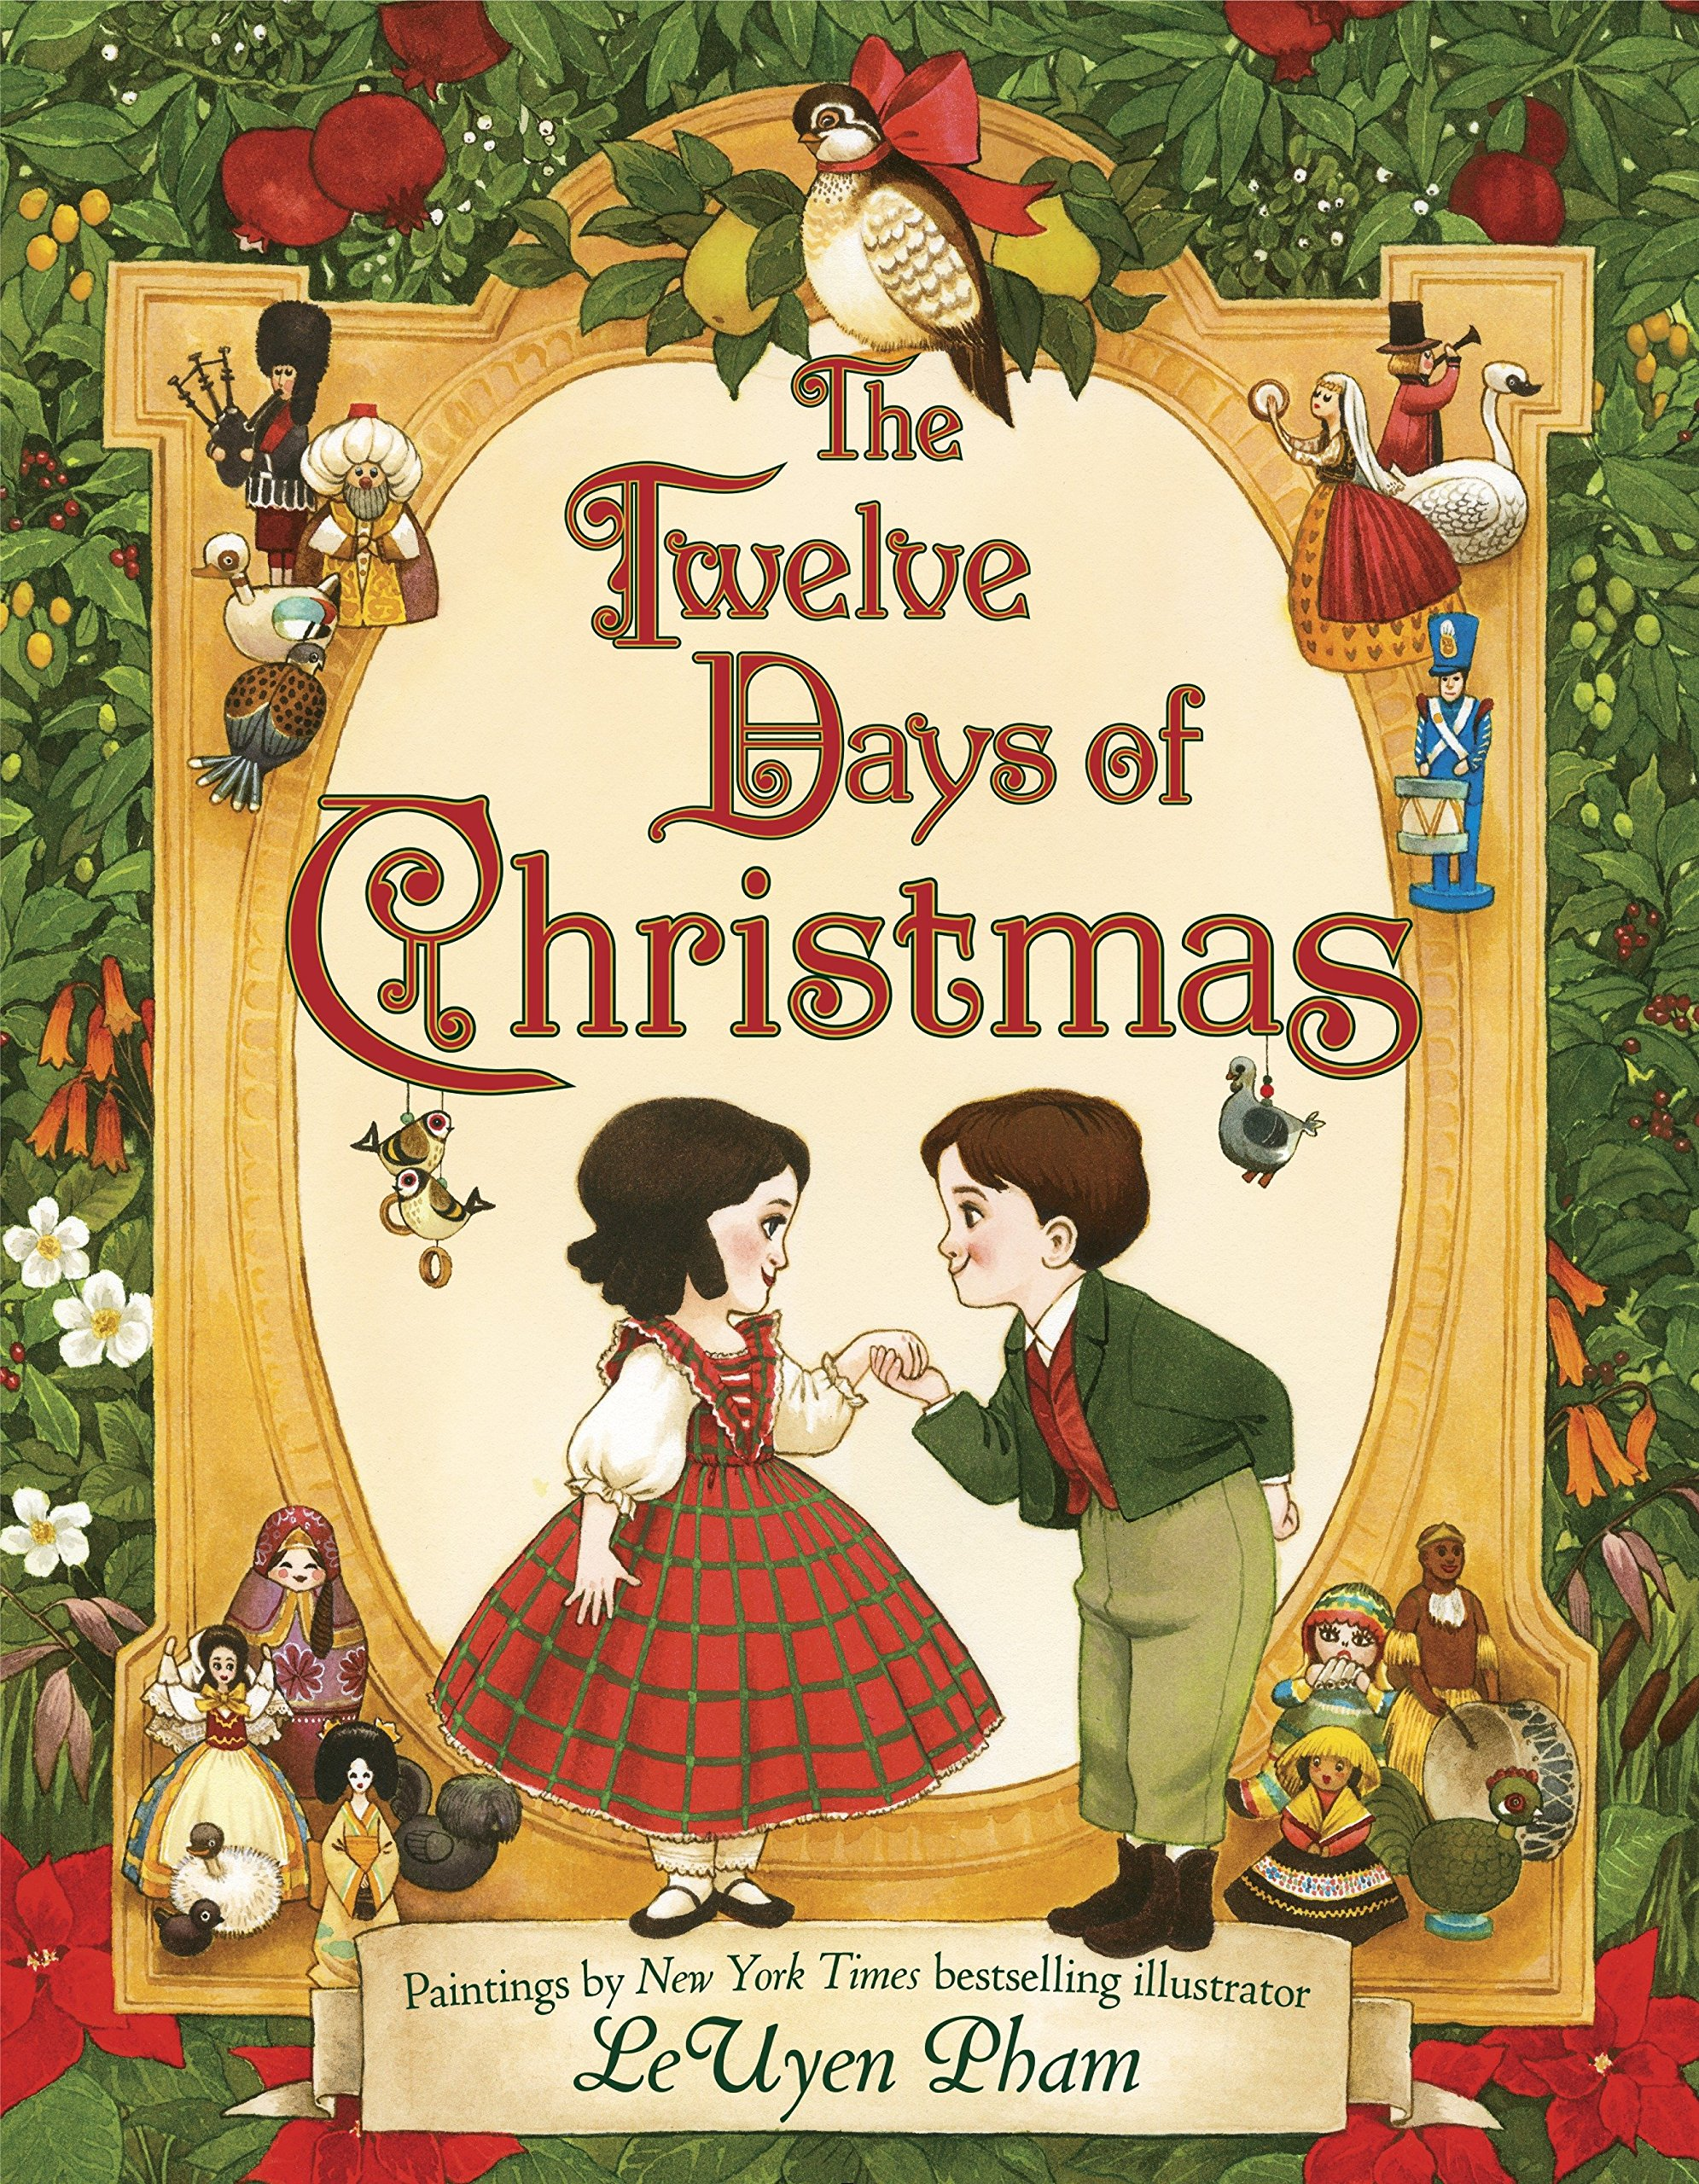 12 Days Of Christmas.Amazon Com The Twelve Days Of Christmas 9780385374132